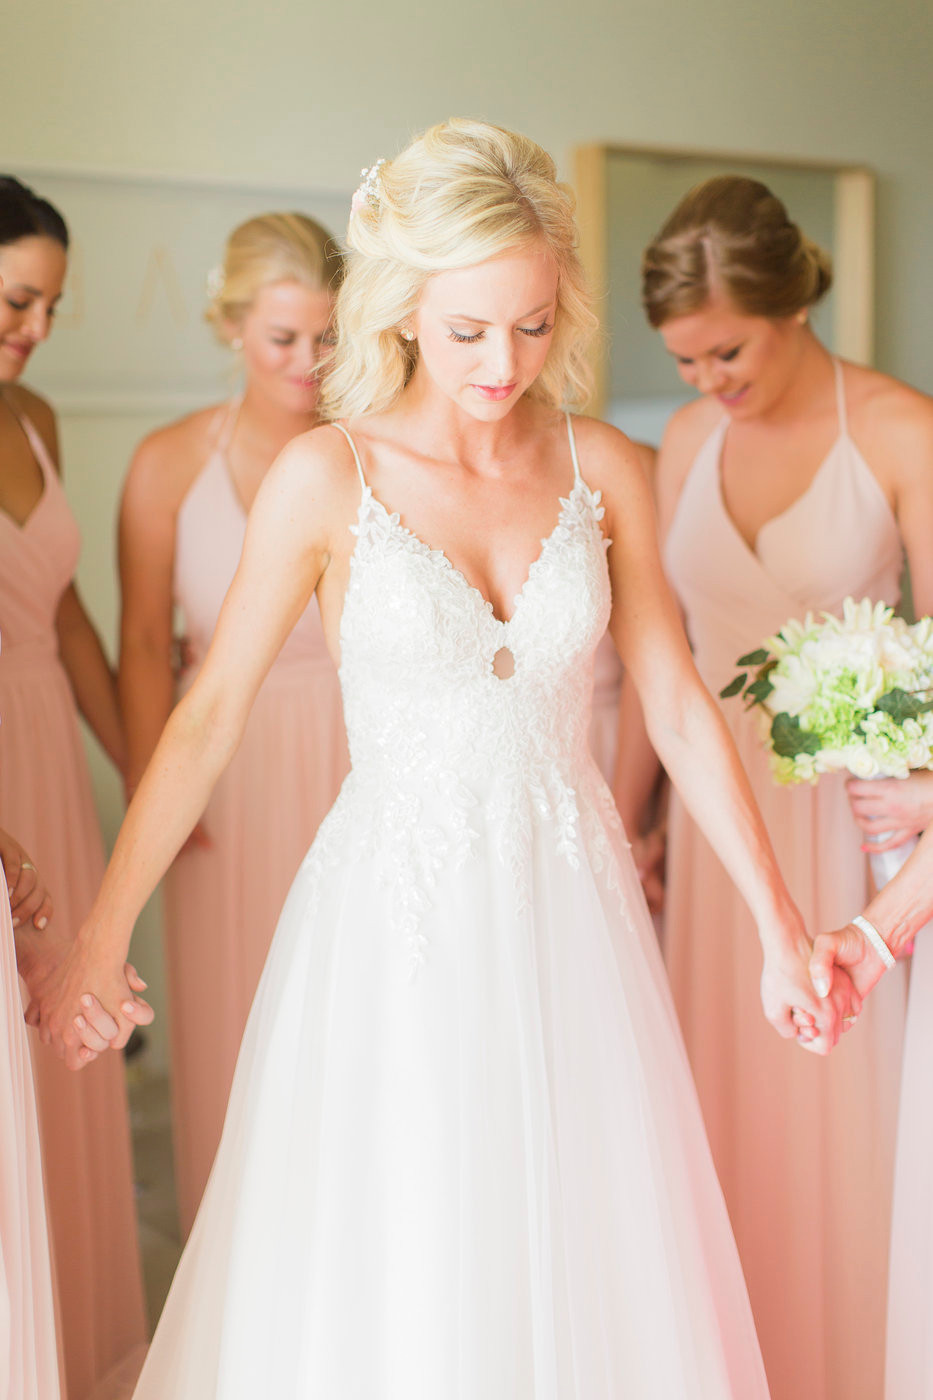 blush bridesmaids, lace wedding dress